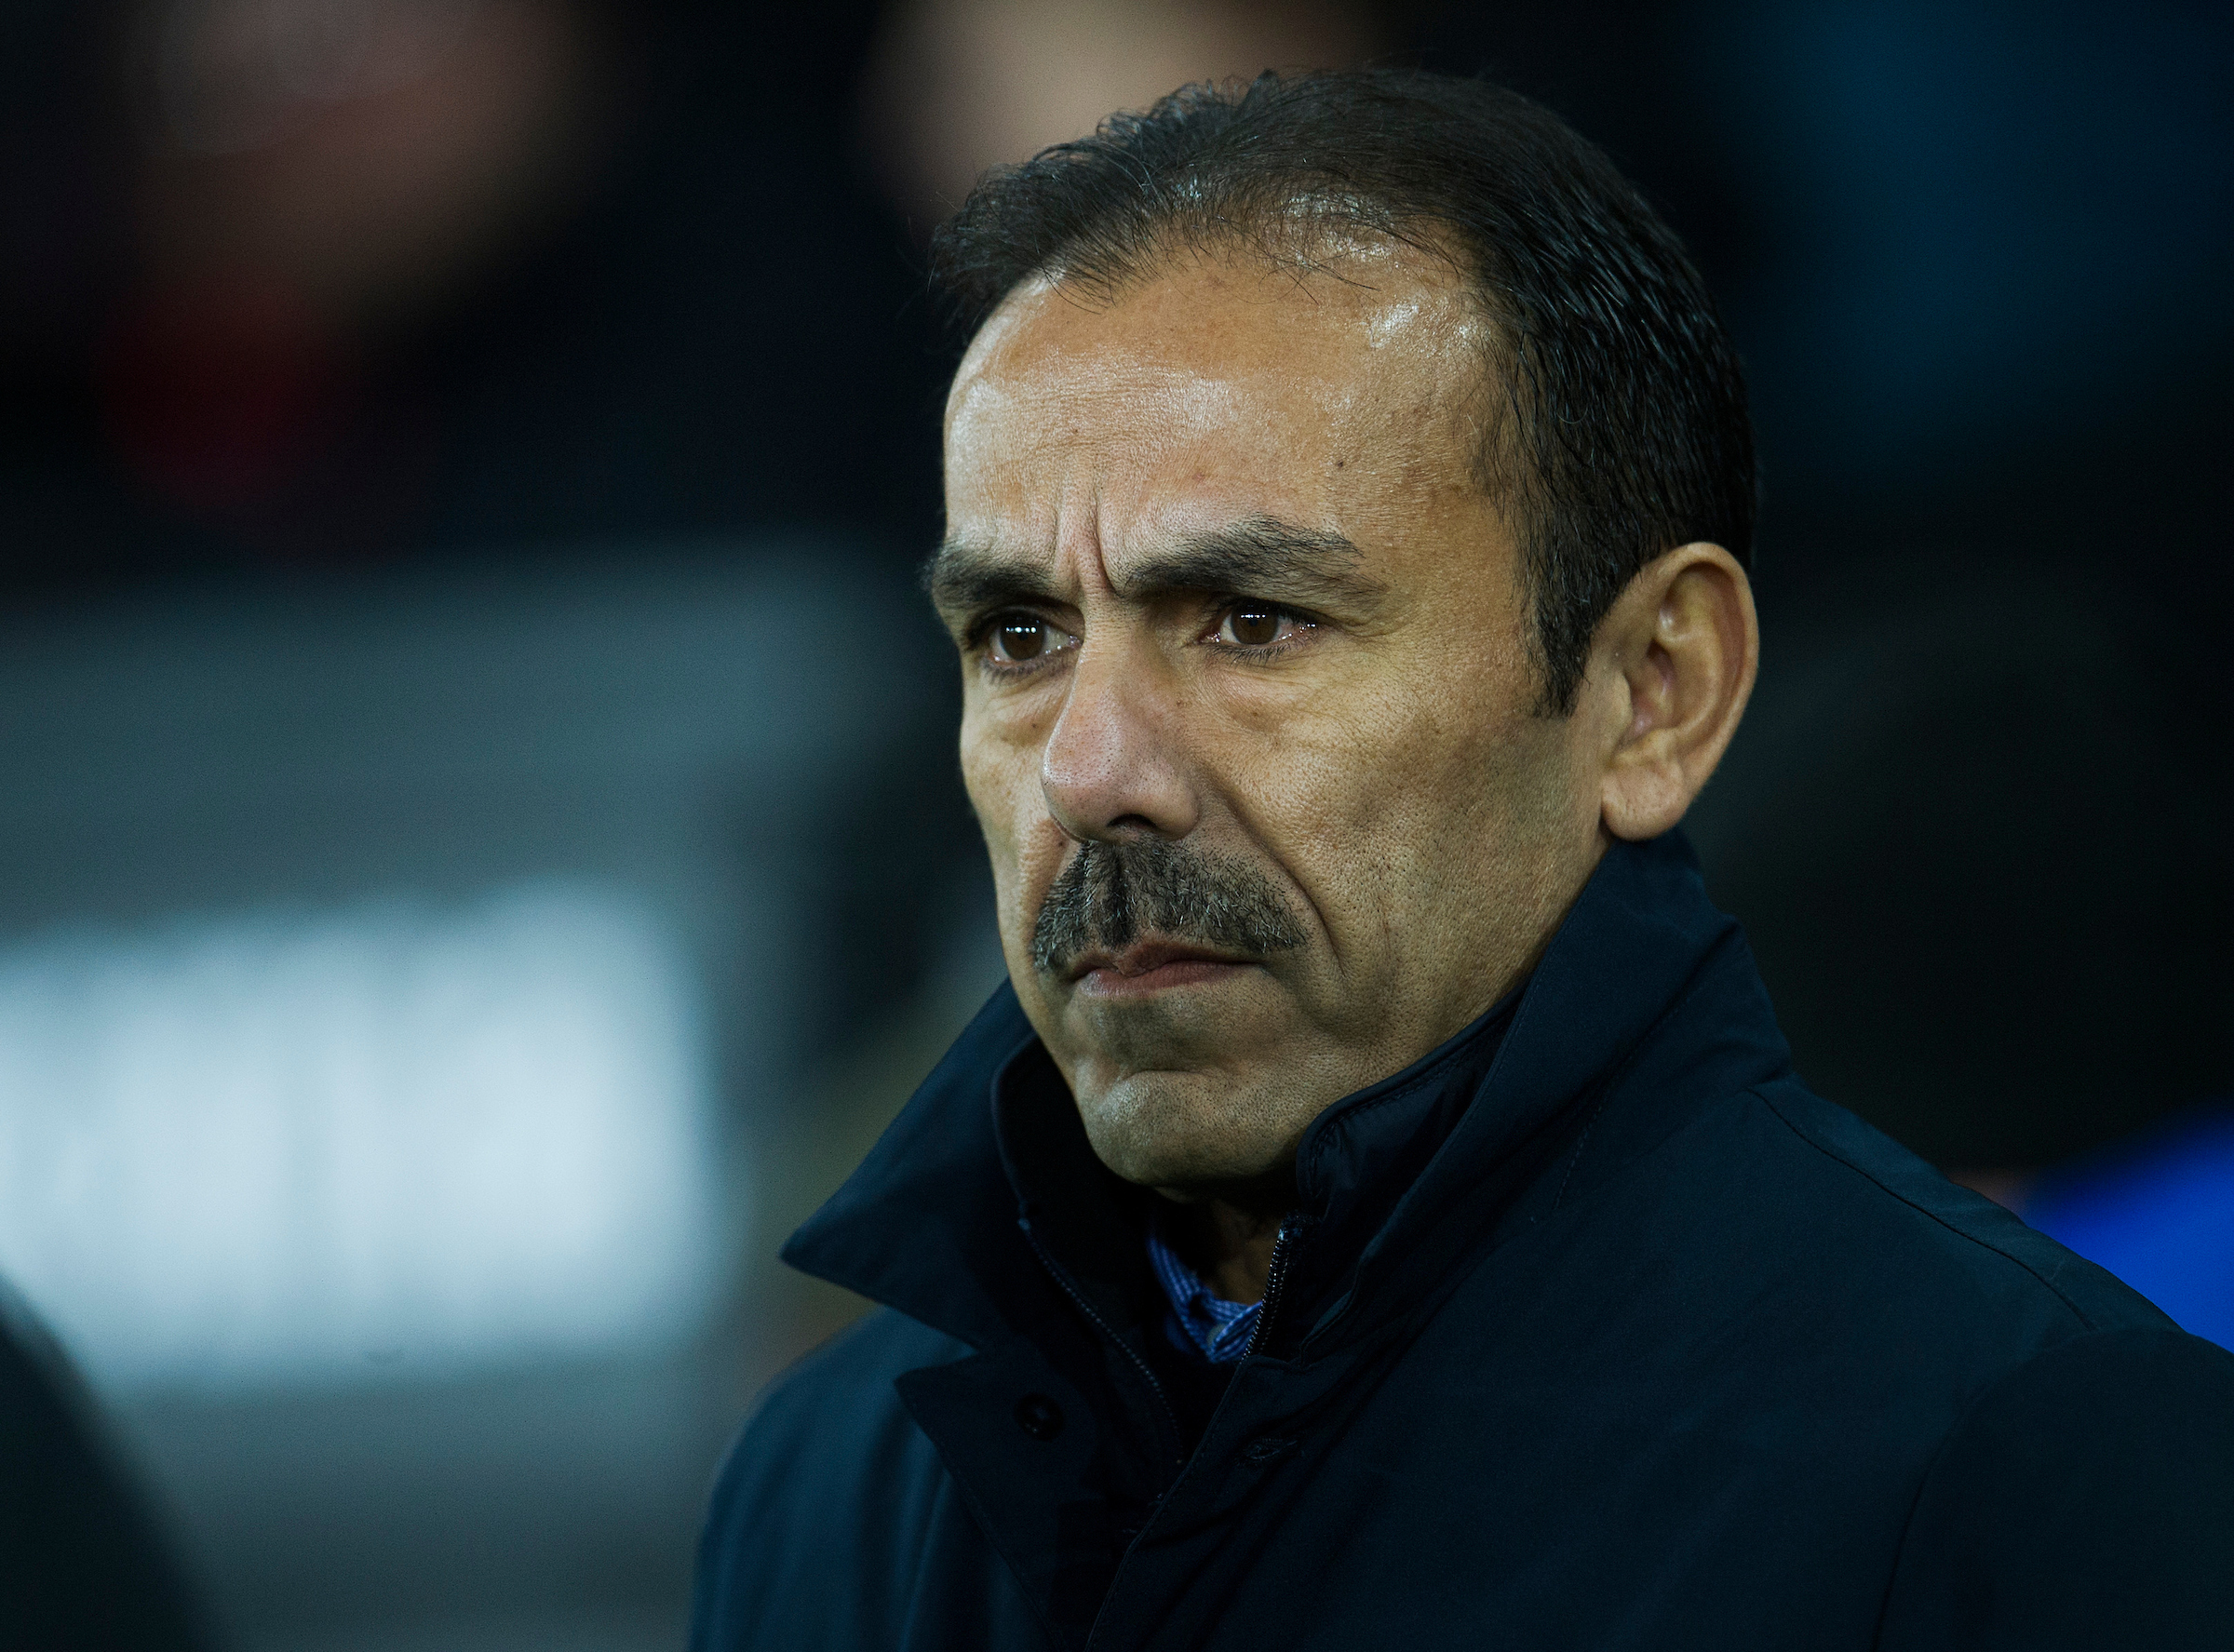 Sheffield Wednesday manager Jos Luhukay admits his side is struggling for confidence ahead of Bolton Wanderers' visit